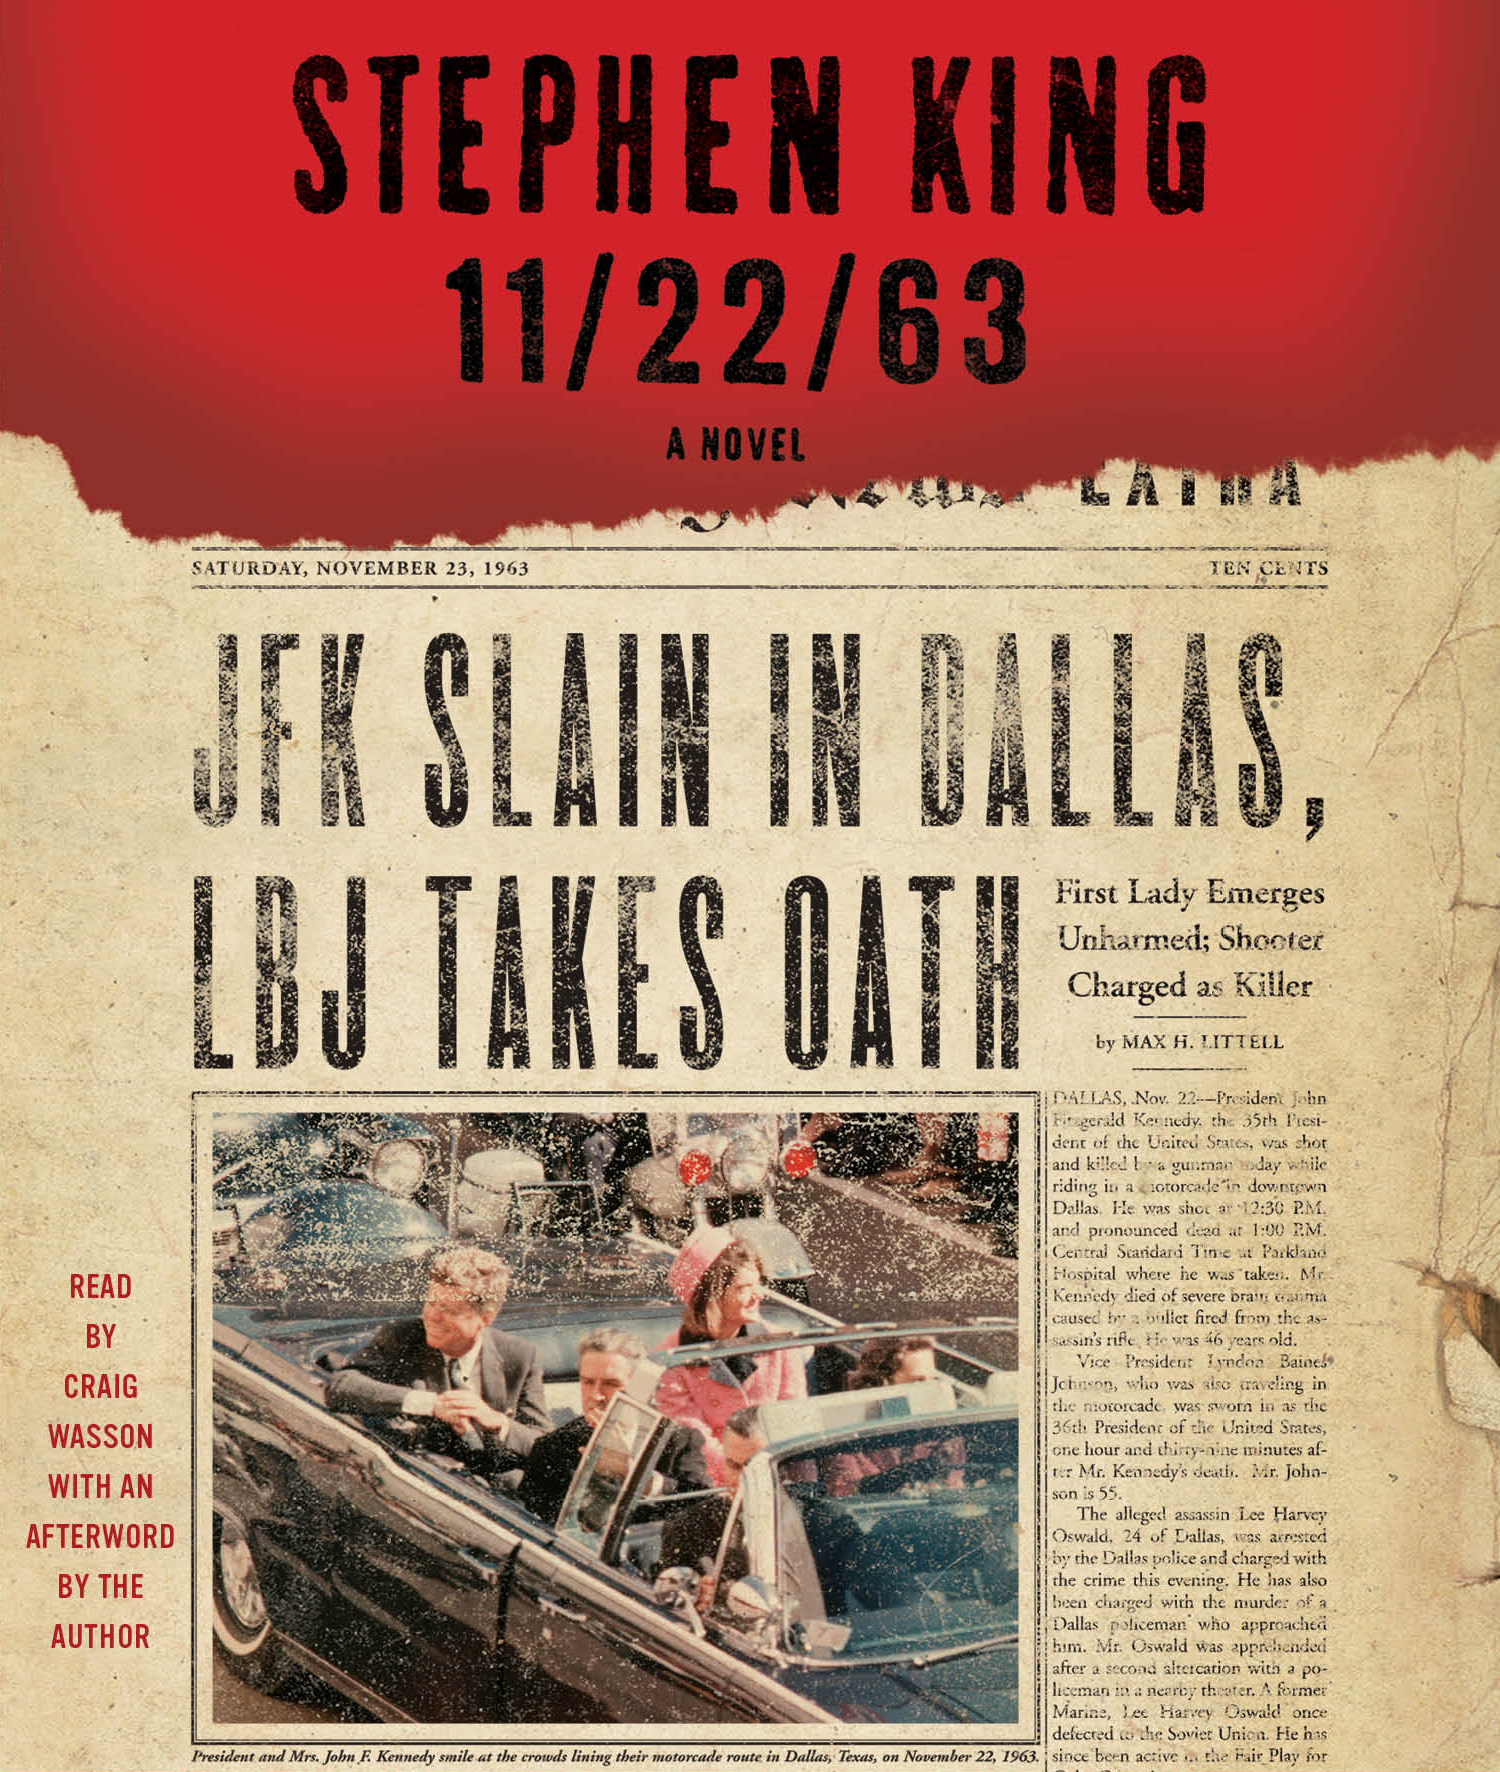 11 22 63 Audiobook on CD by Stephen King  Craig Wasson   Official     Cvr9781442344280 9781442344280 hr  11 22 63